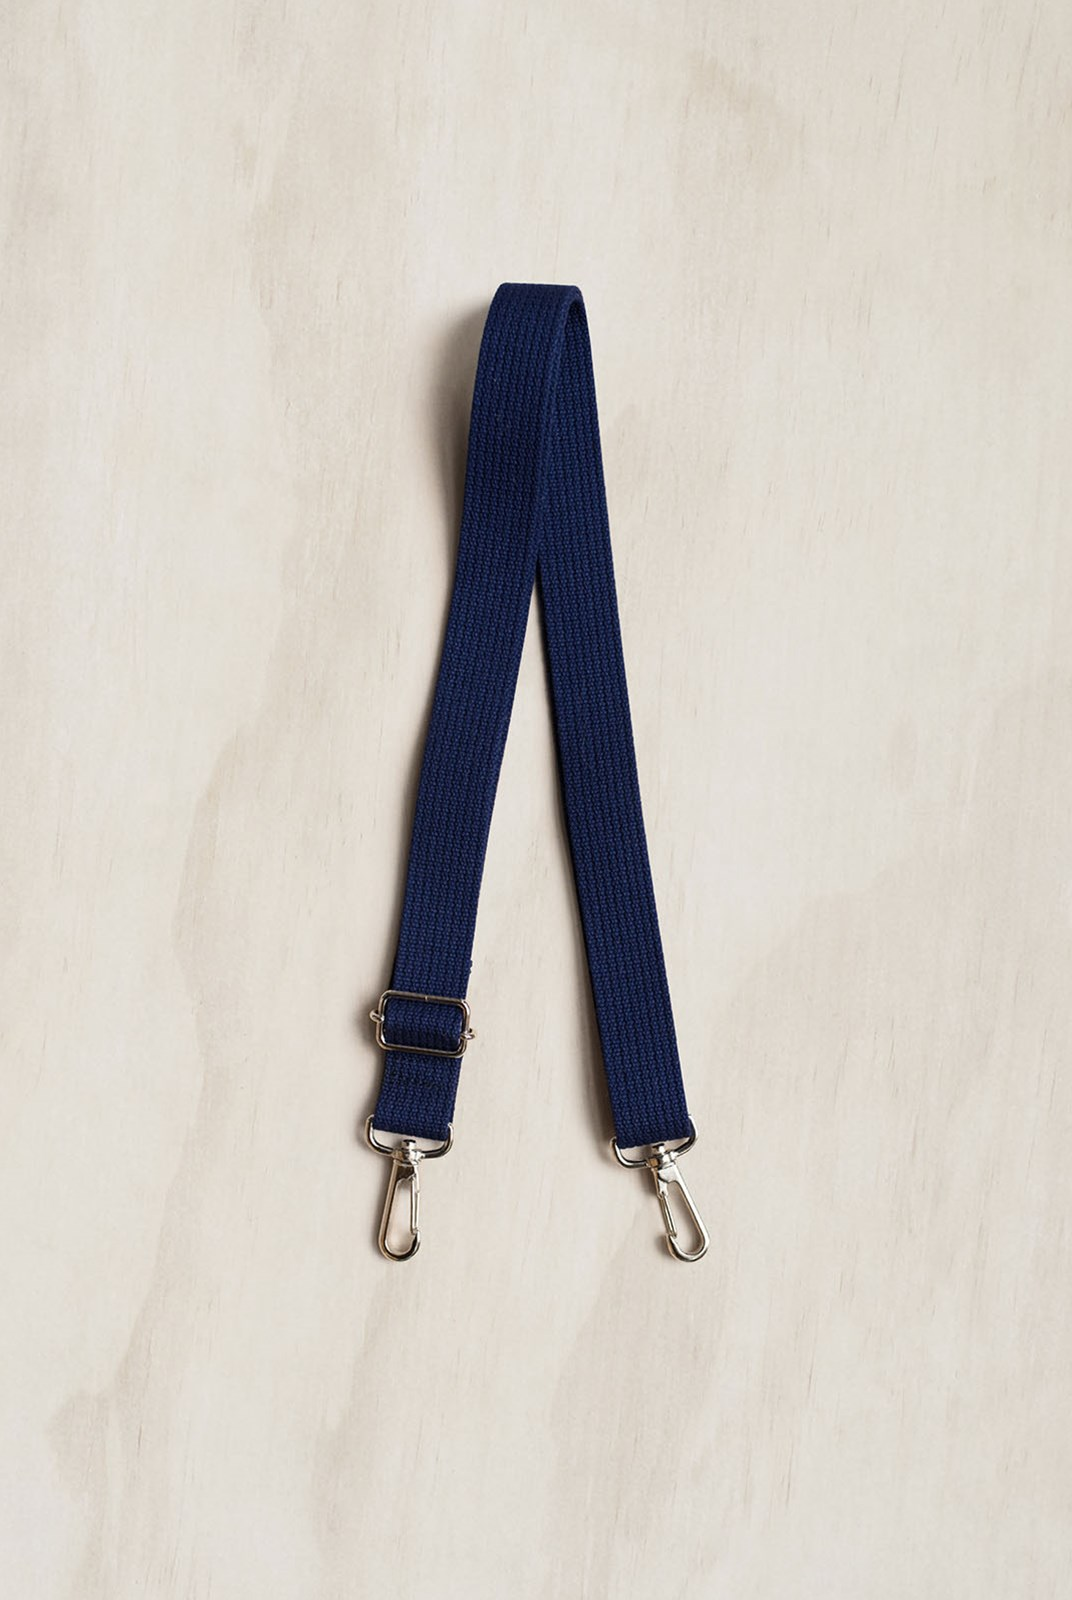 Delfonics - Inner Carry Bag Shoulder Strap - Dark Blue